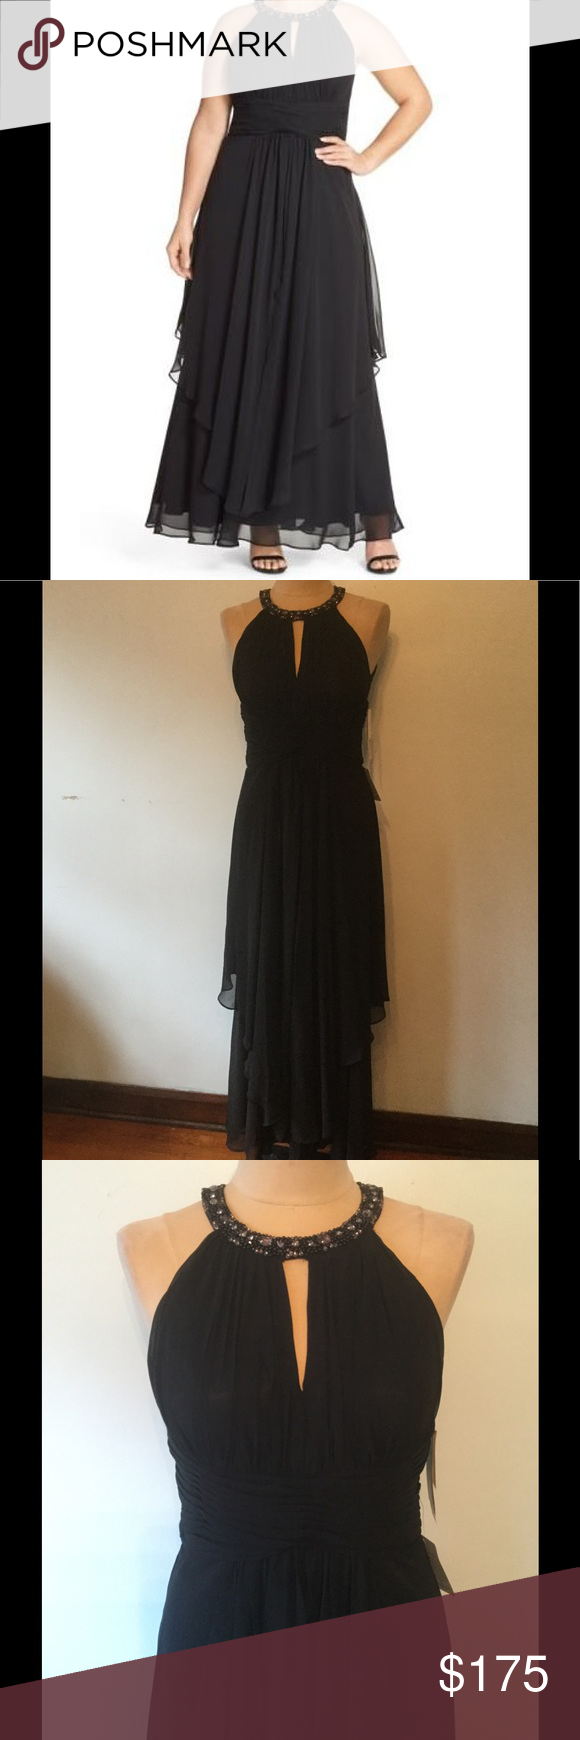 Eliza J 8 Embellished Tiered Chiffon Halter Gown NWT